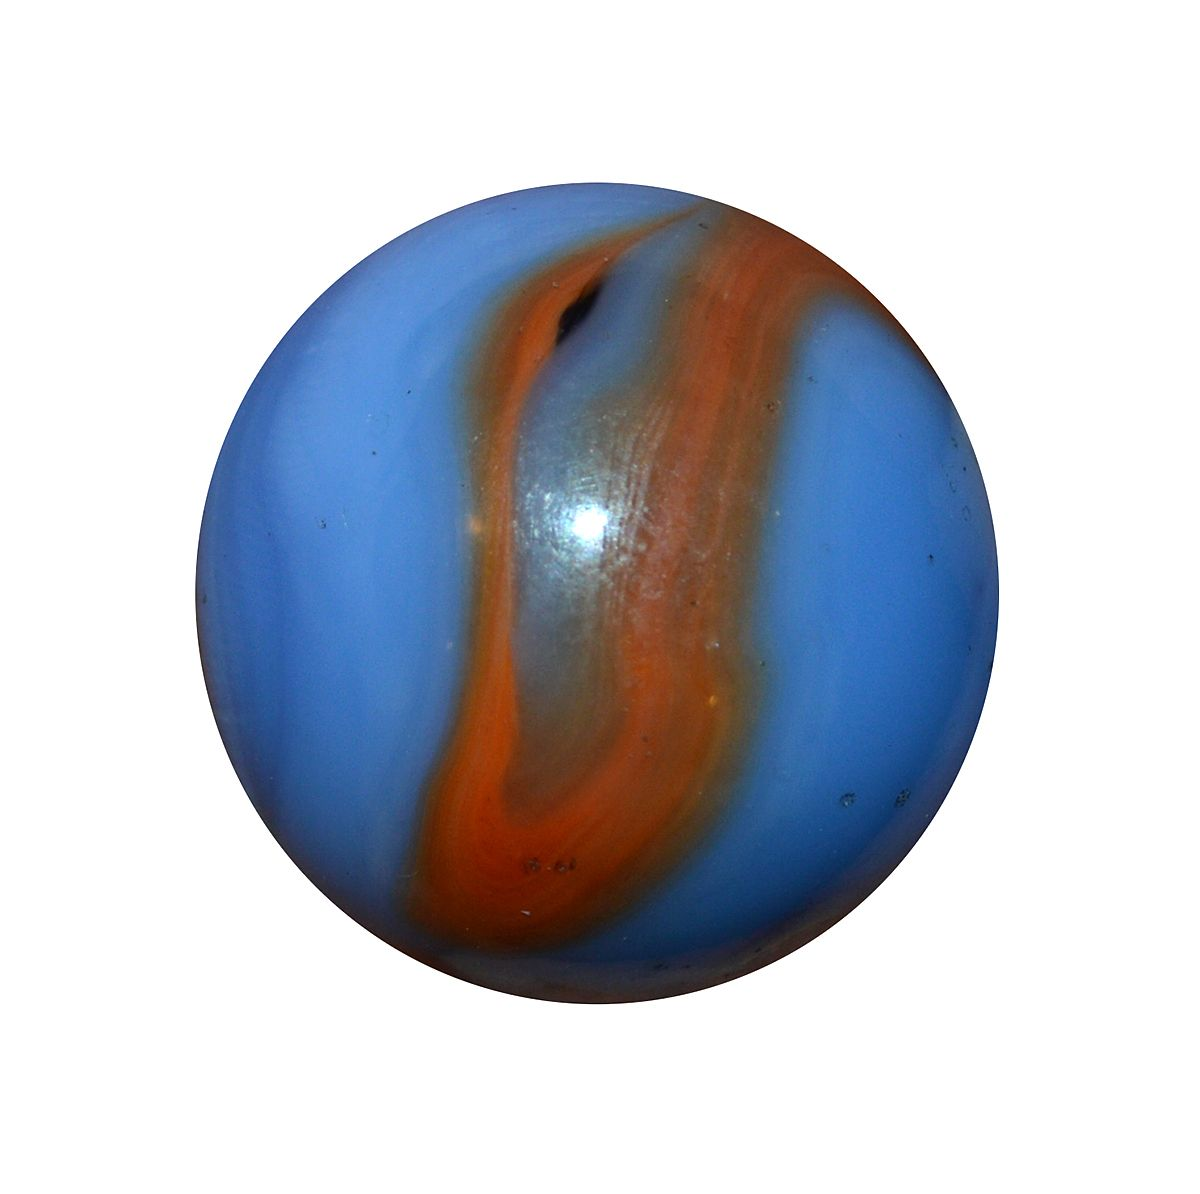 Details about  /Vintage Rare Dark Blue Akro Agate White Collectible Glass Sphere Marble